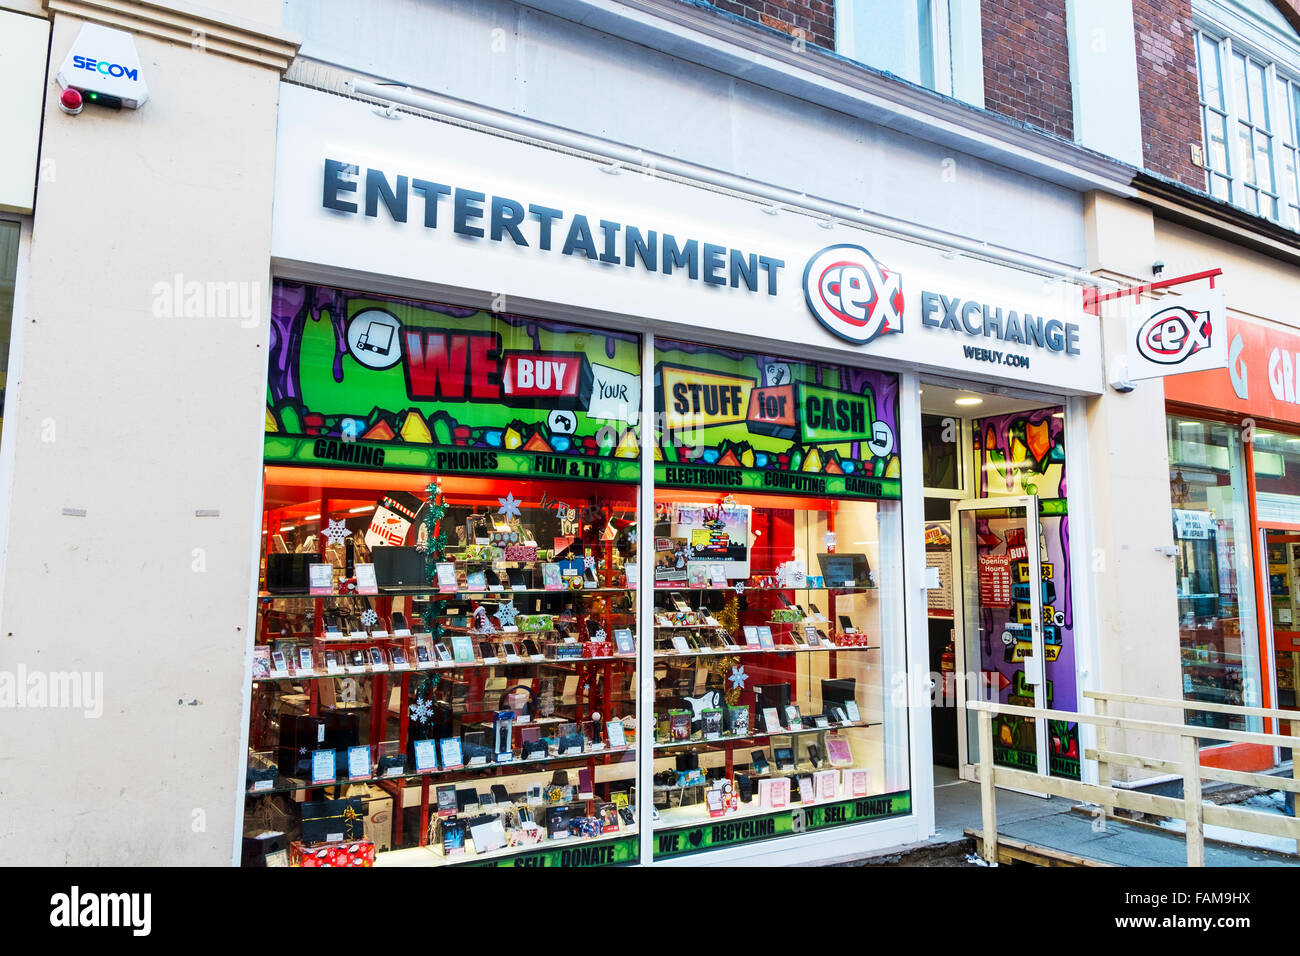 CEX Entertainment Exchange Shop Store Sign Front Entrance Logo Kingston Upon Hull UK England